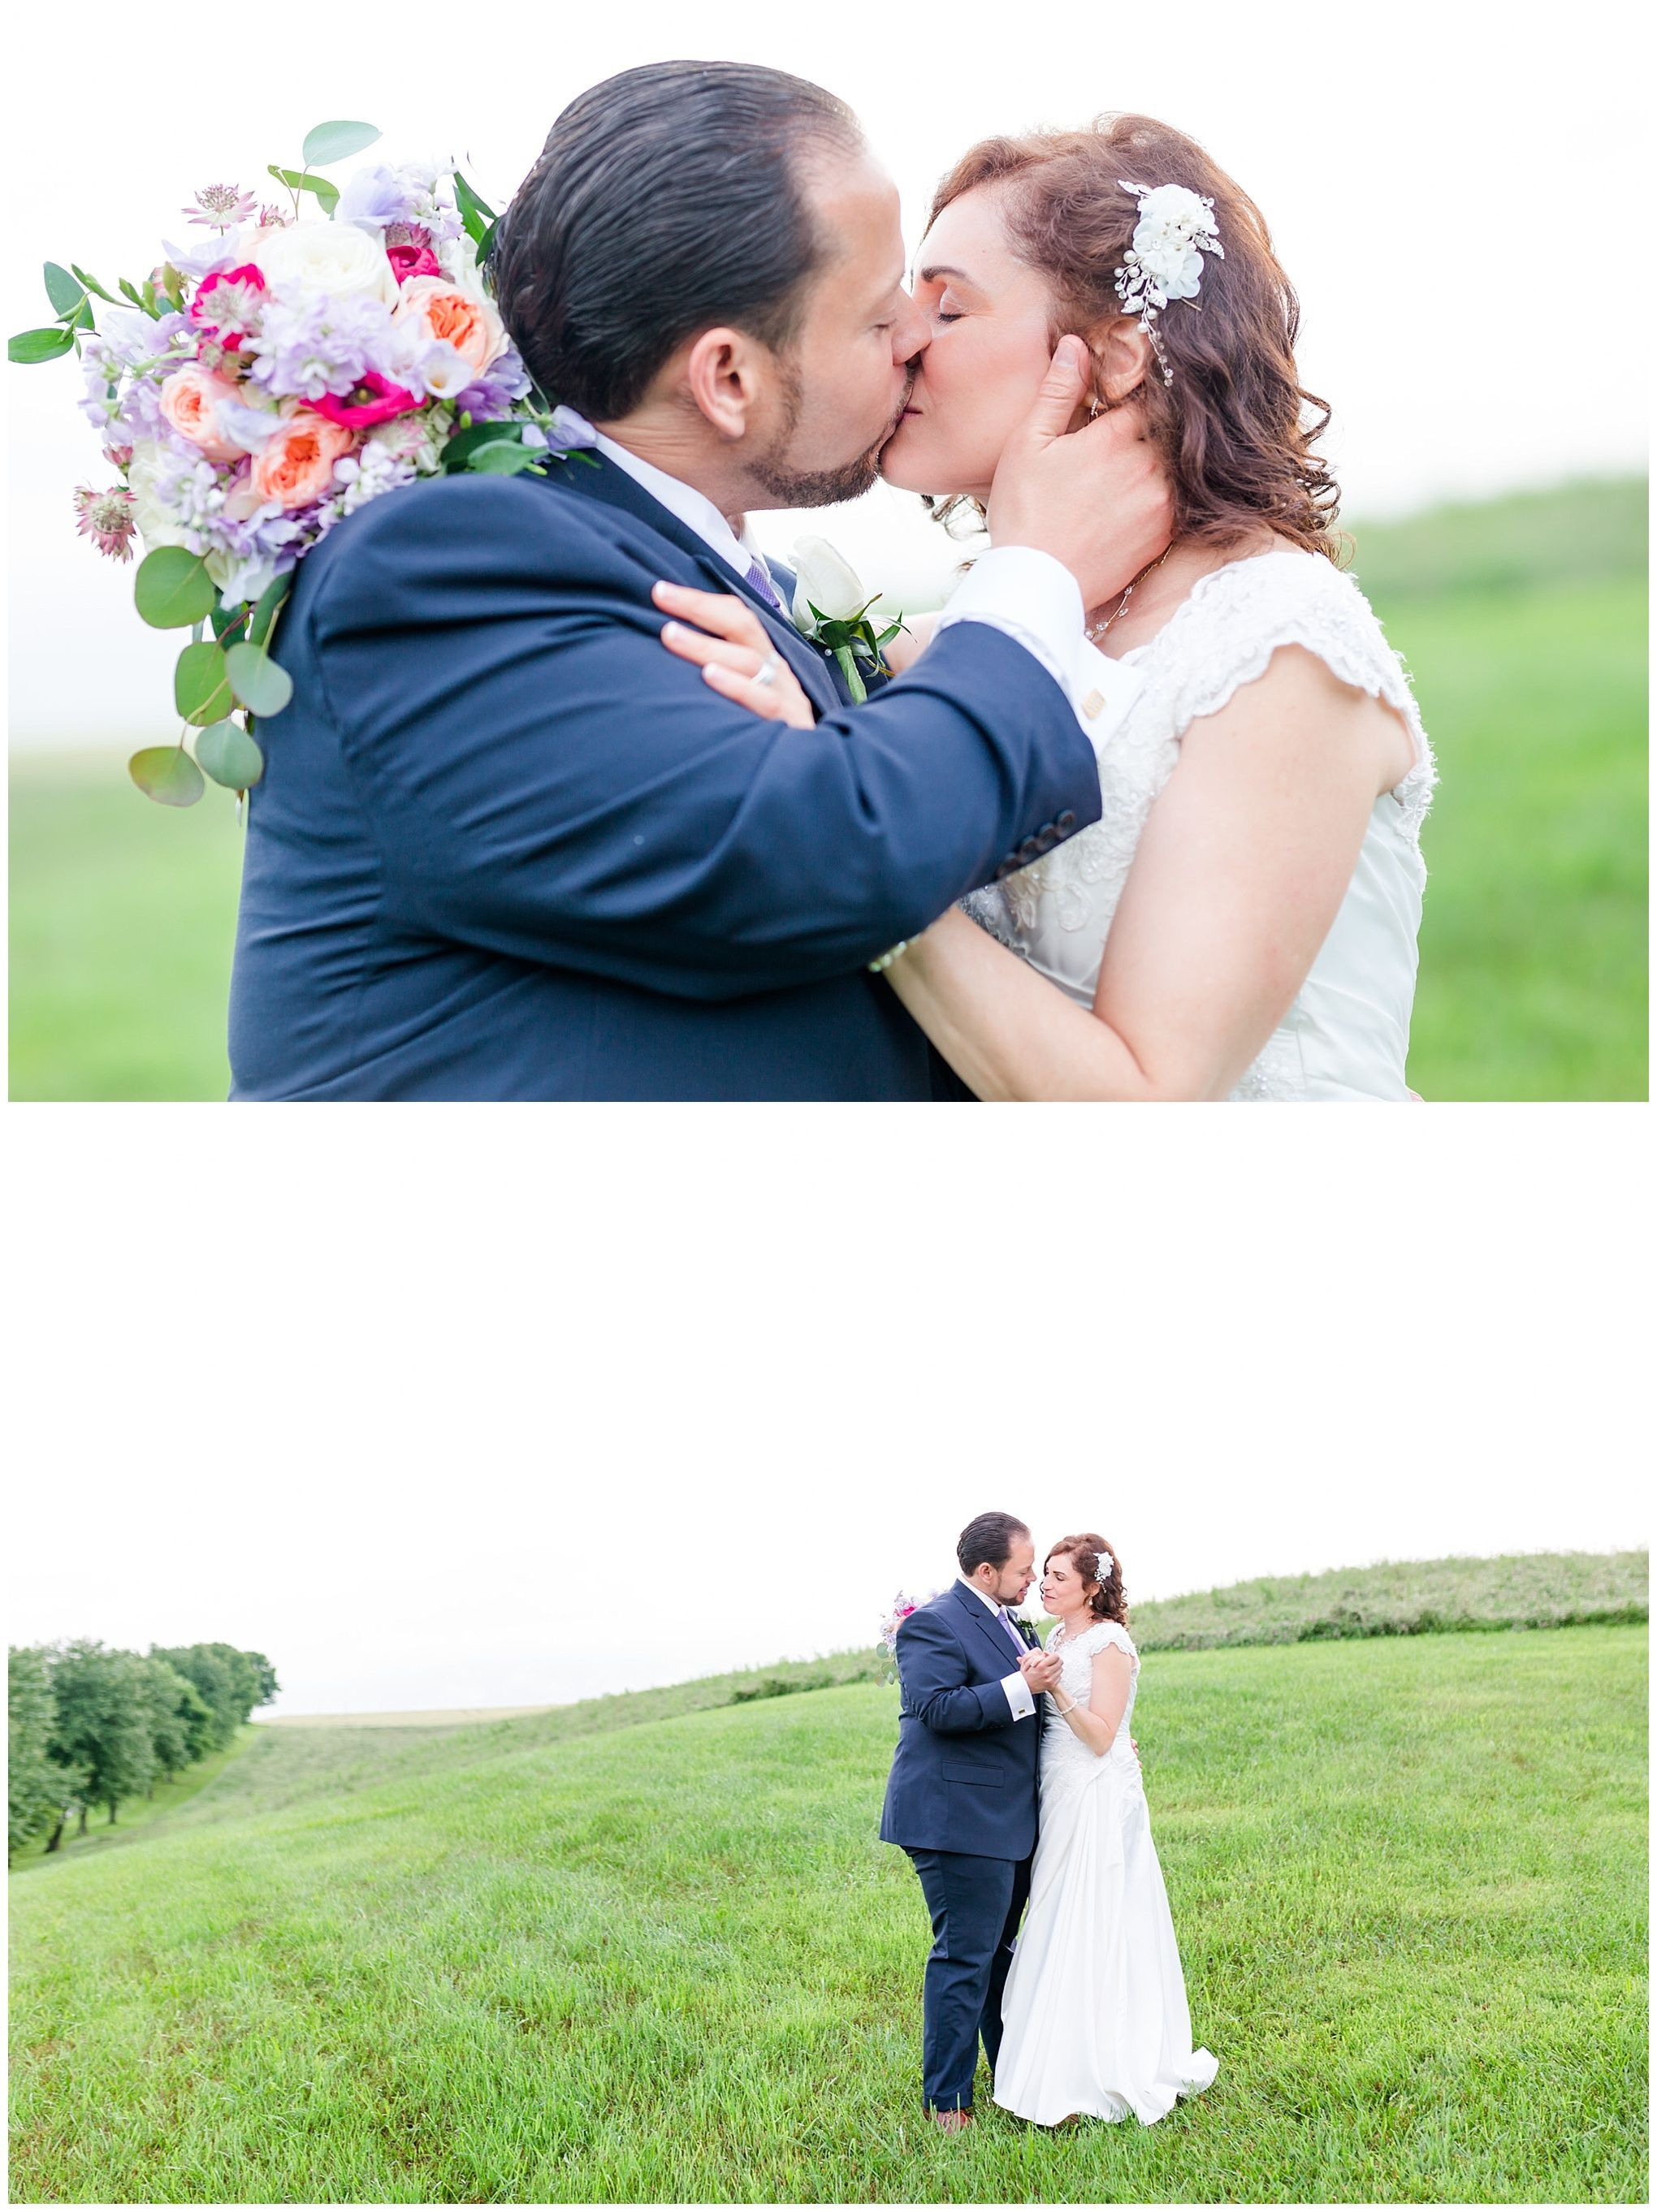 See more of this rainy wedding day here https